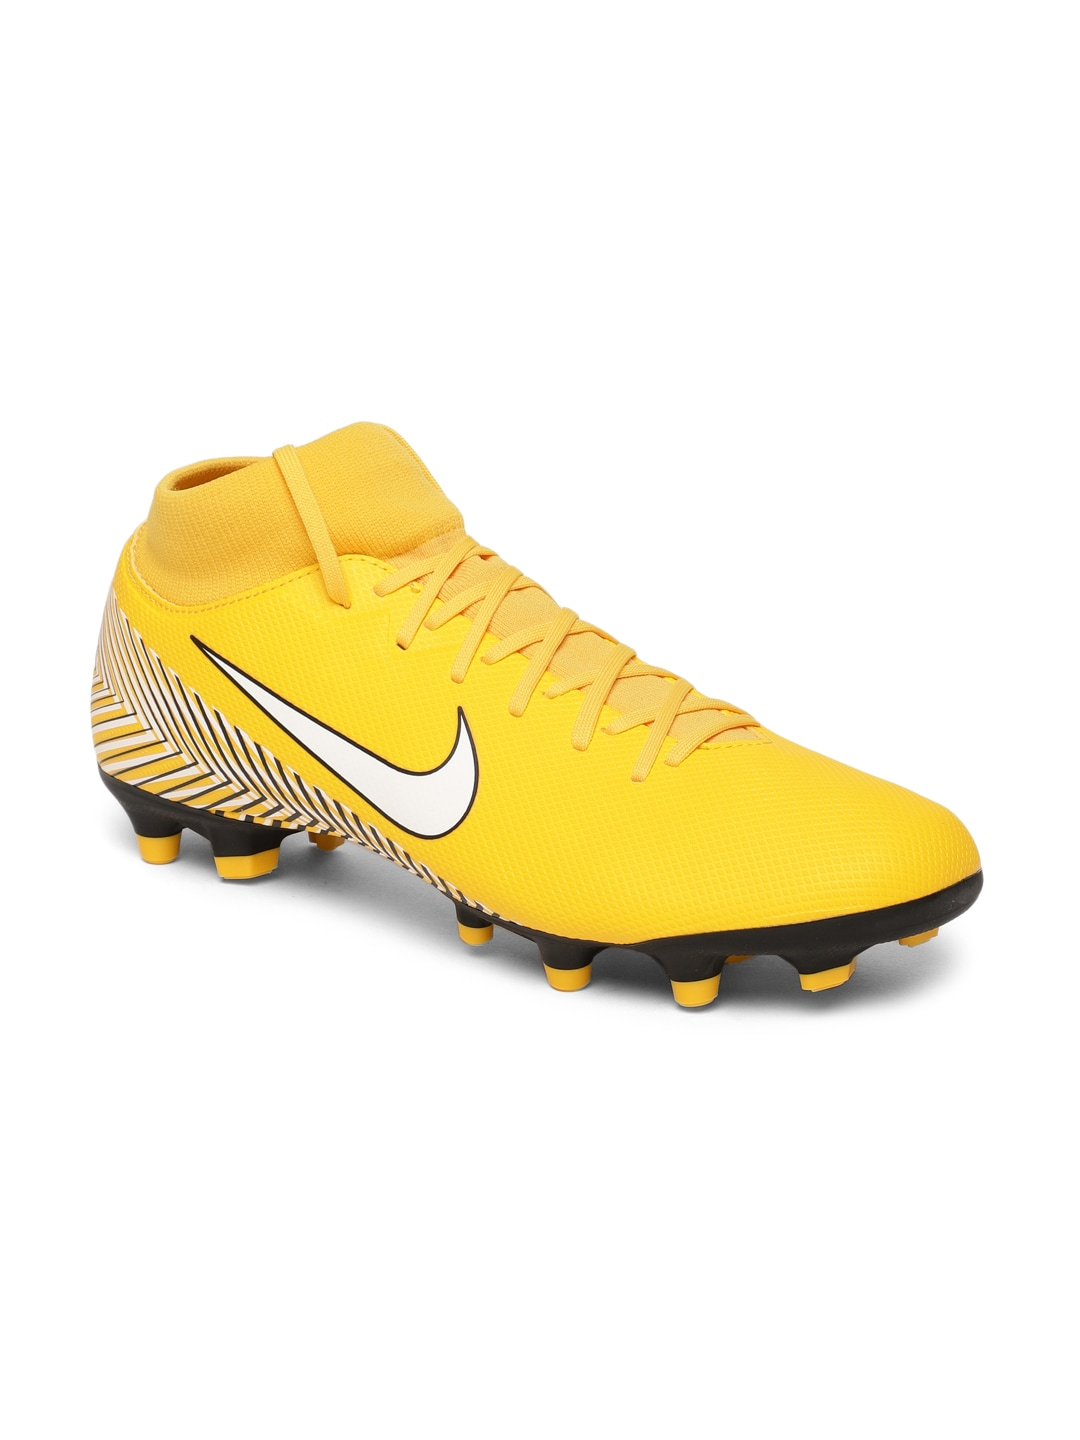 4e6b80736 Nike Superfly - Buy Nike Superfly online in India